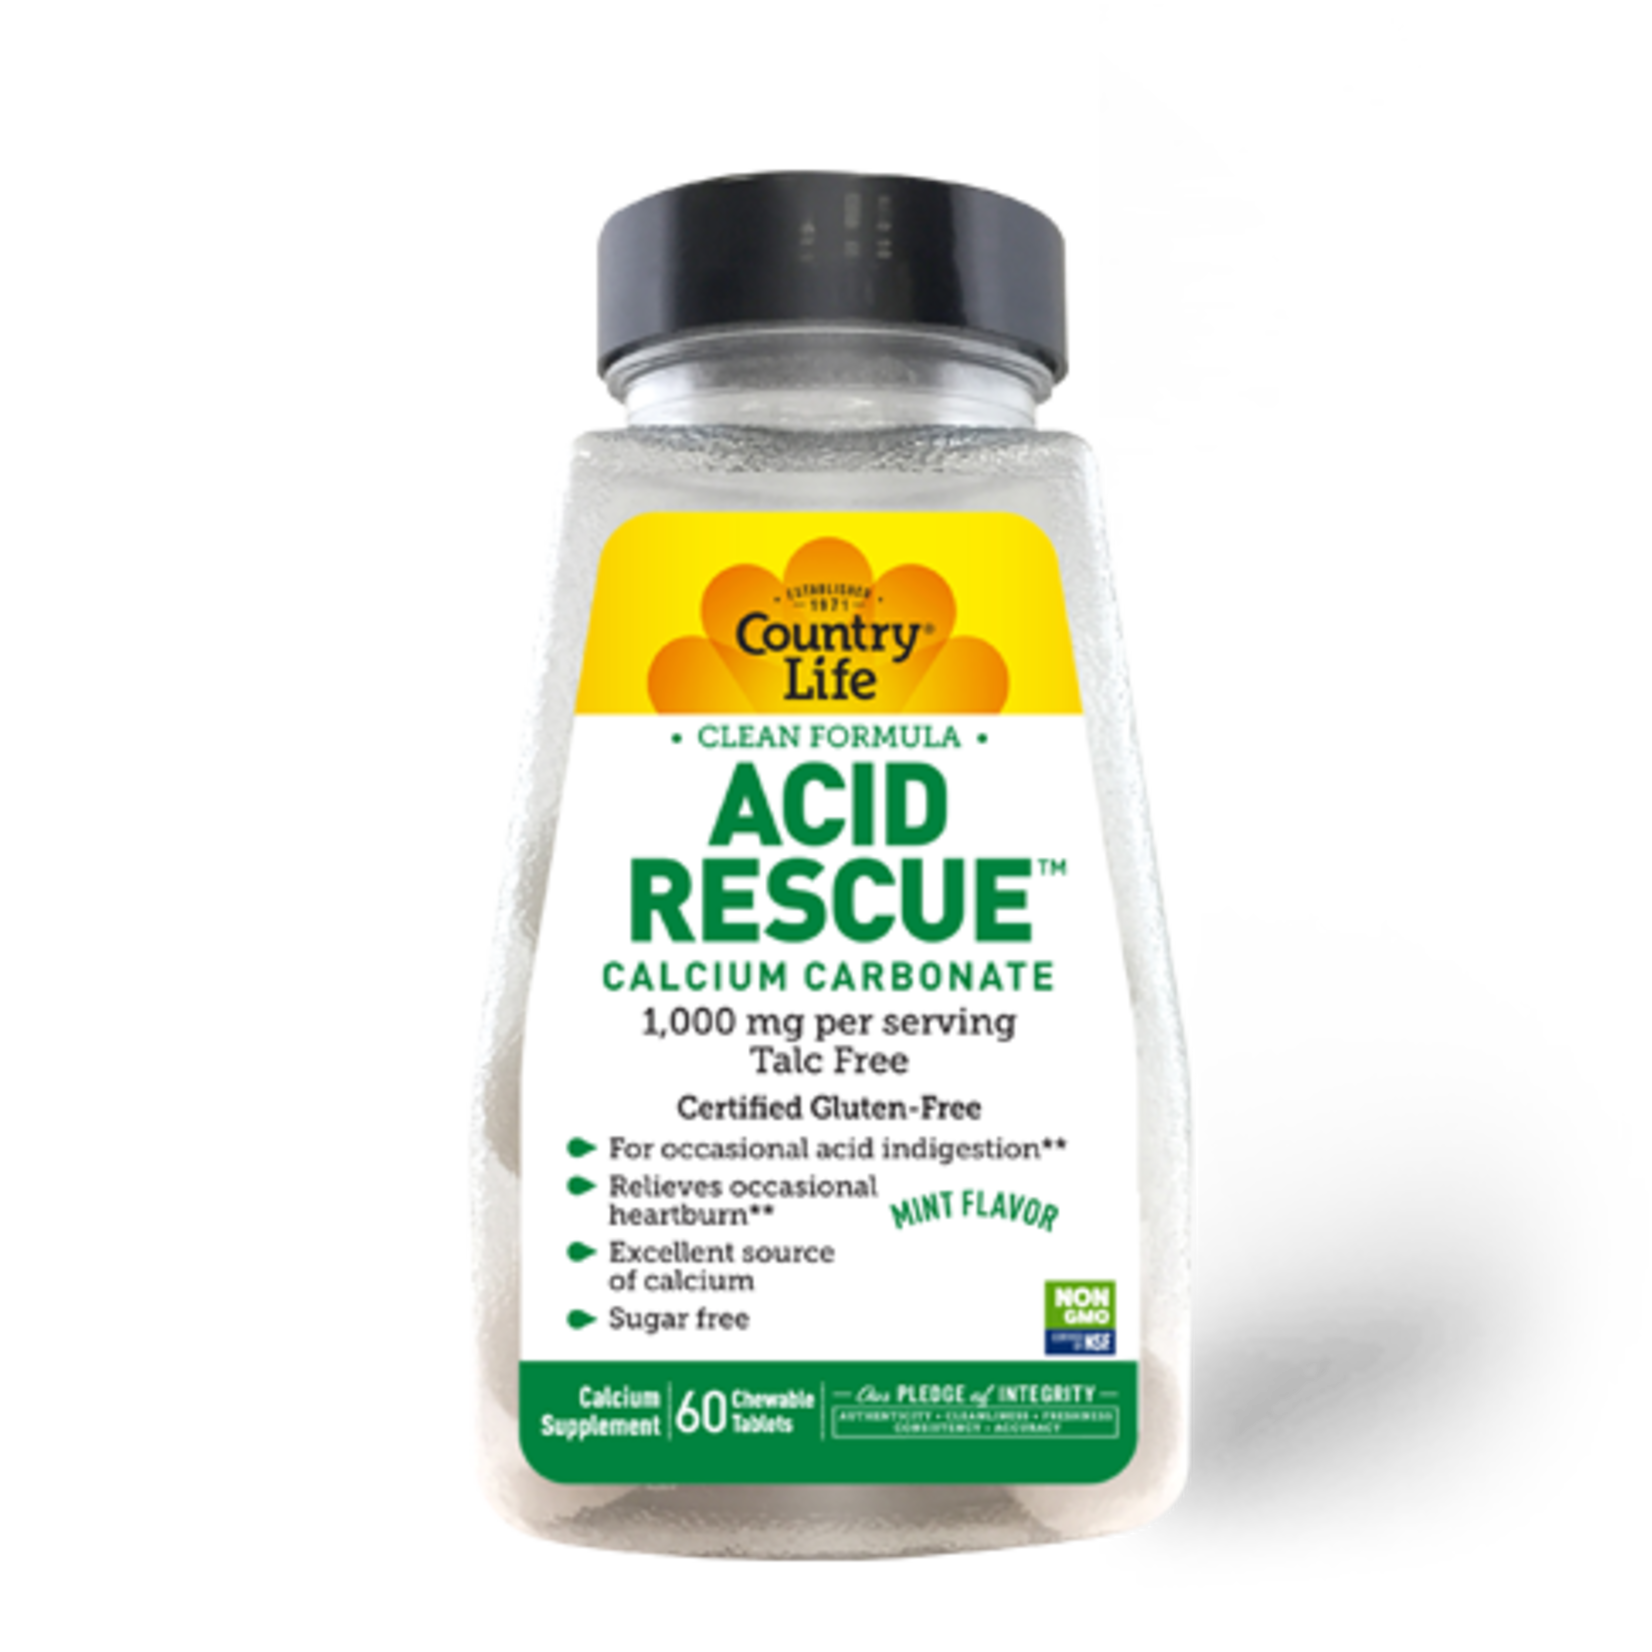 Country Life Country Life Acid Rescue Calcium Carbonate 60 Chewable tablets